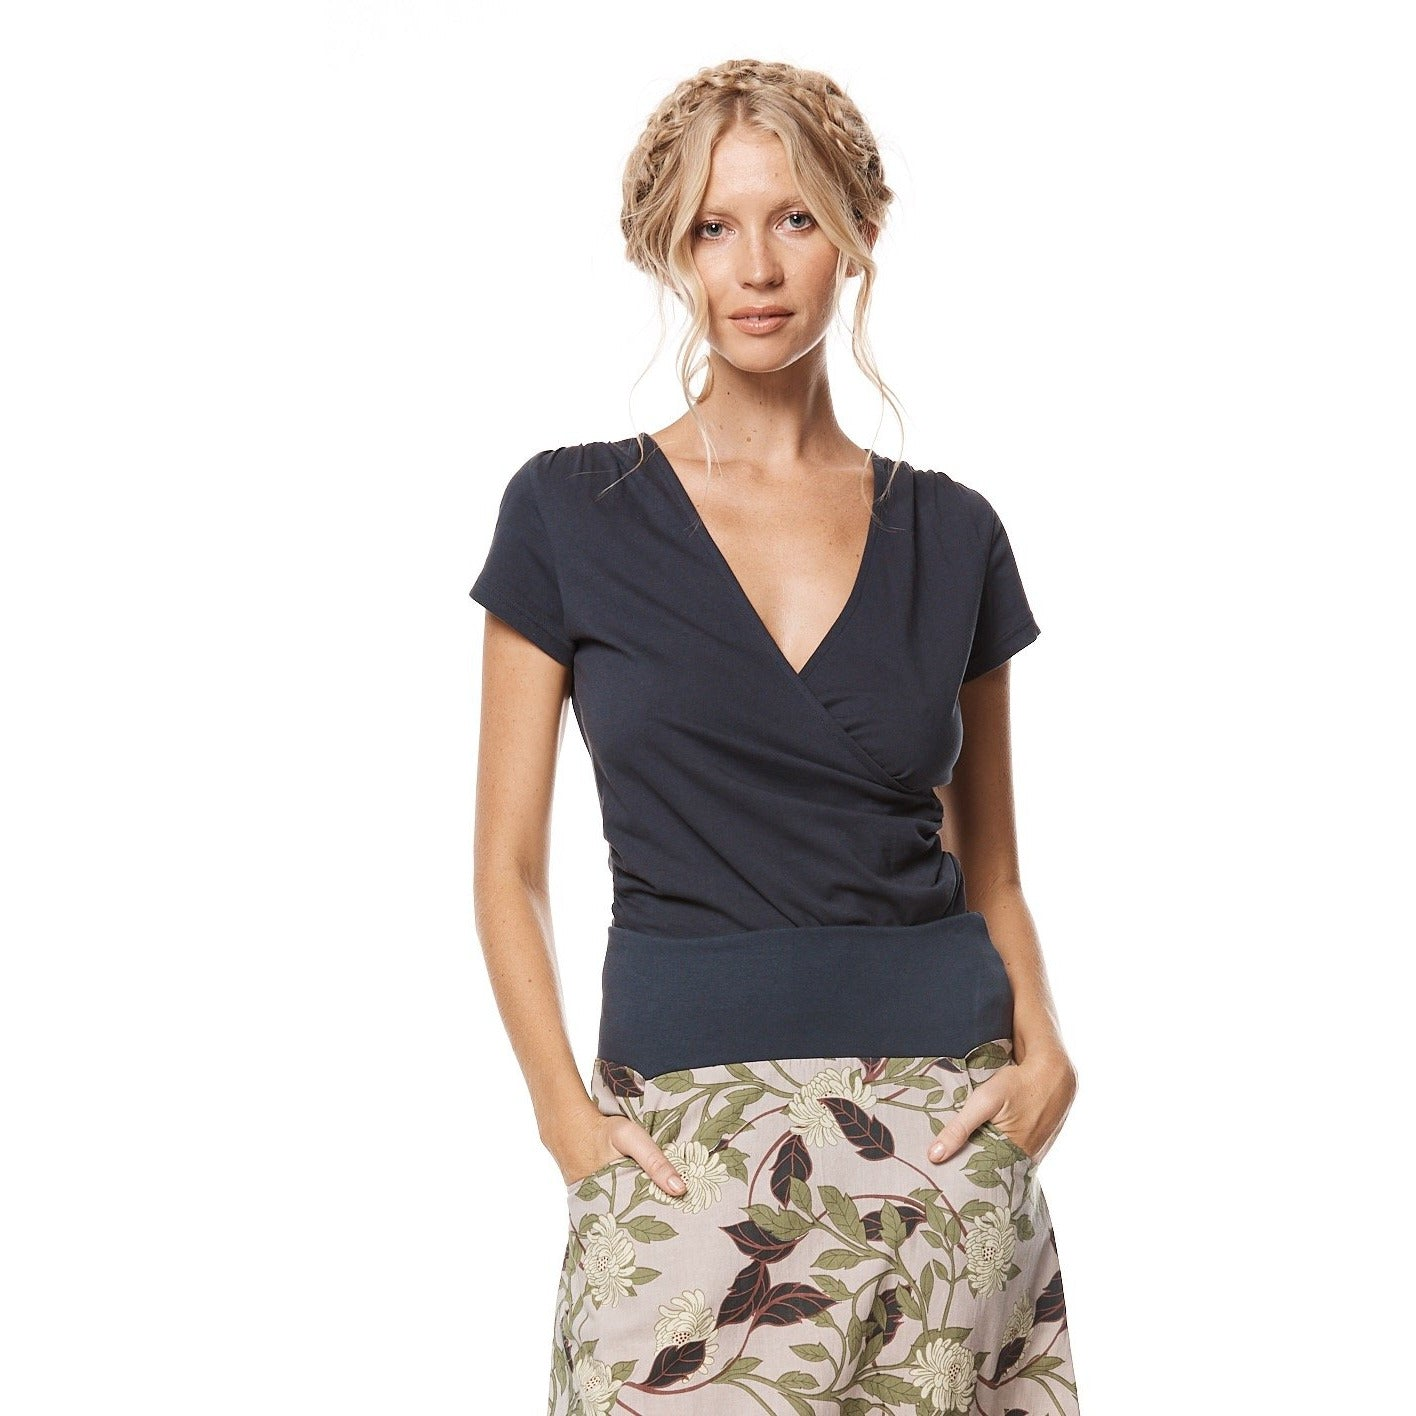 MahaShe Hayley Top in Storm Plain